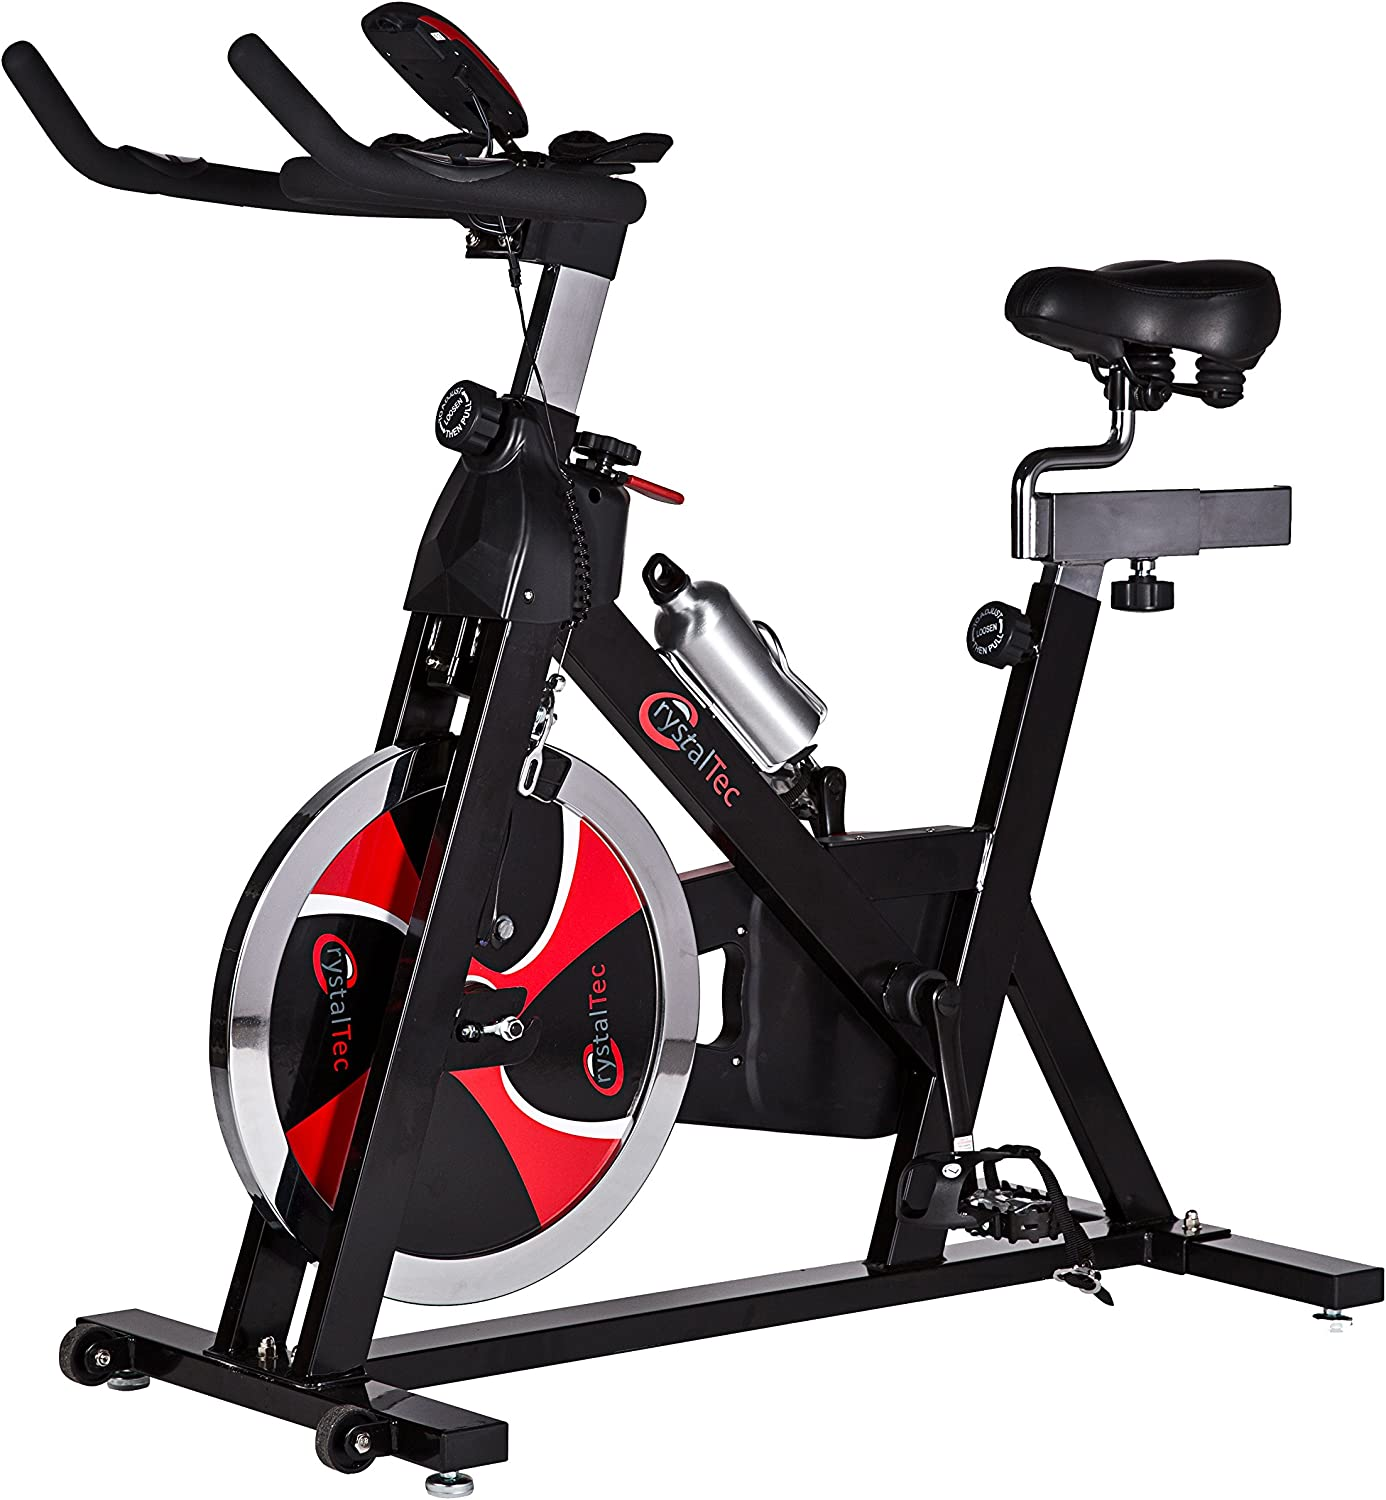 CrystalTec Aerobic Training Exercise Bike / Cycle: Amazon.es ...